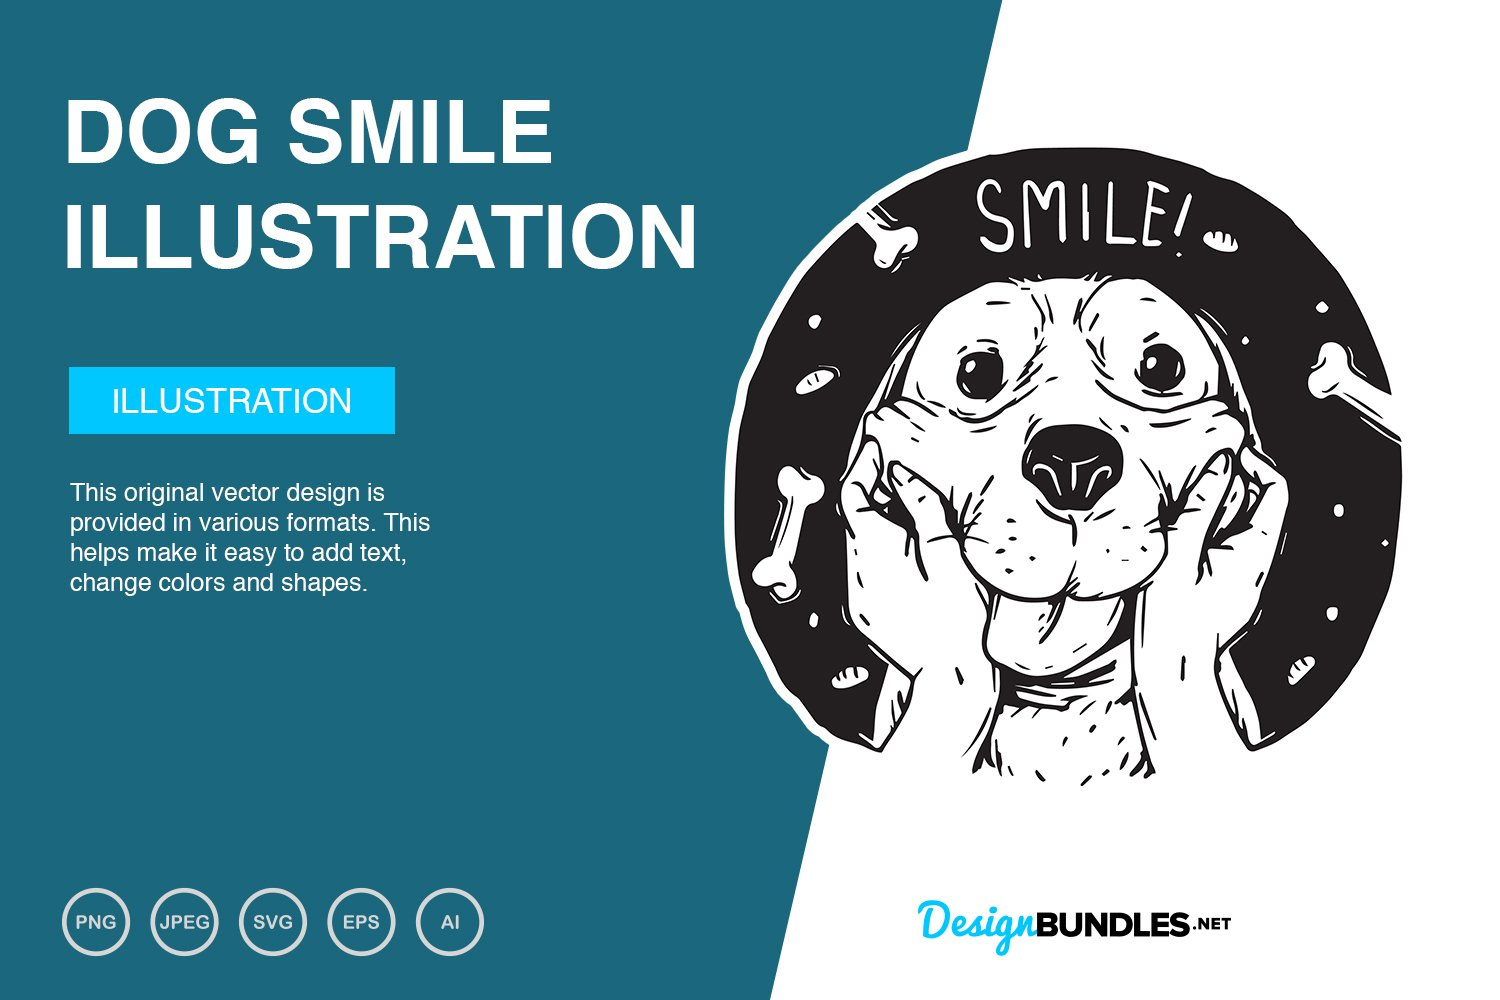 Dog Smile Vector Illustration example image 1